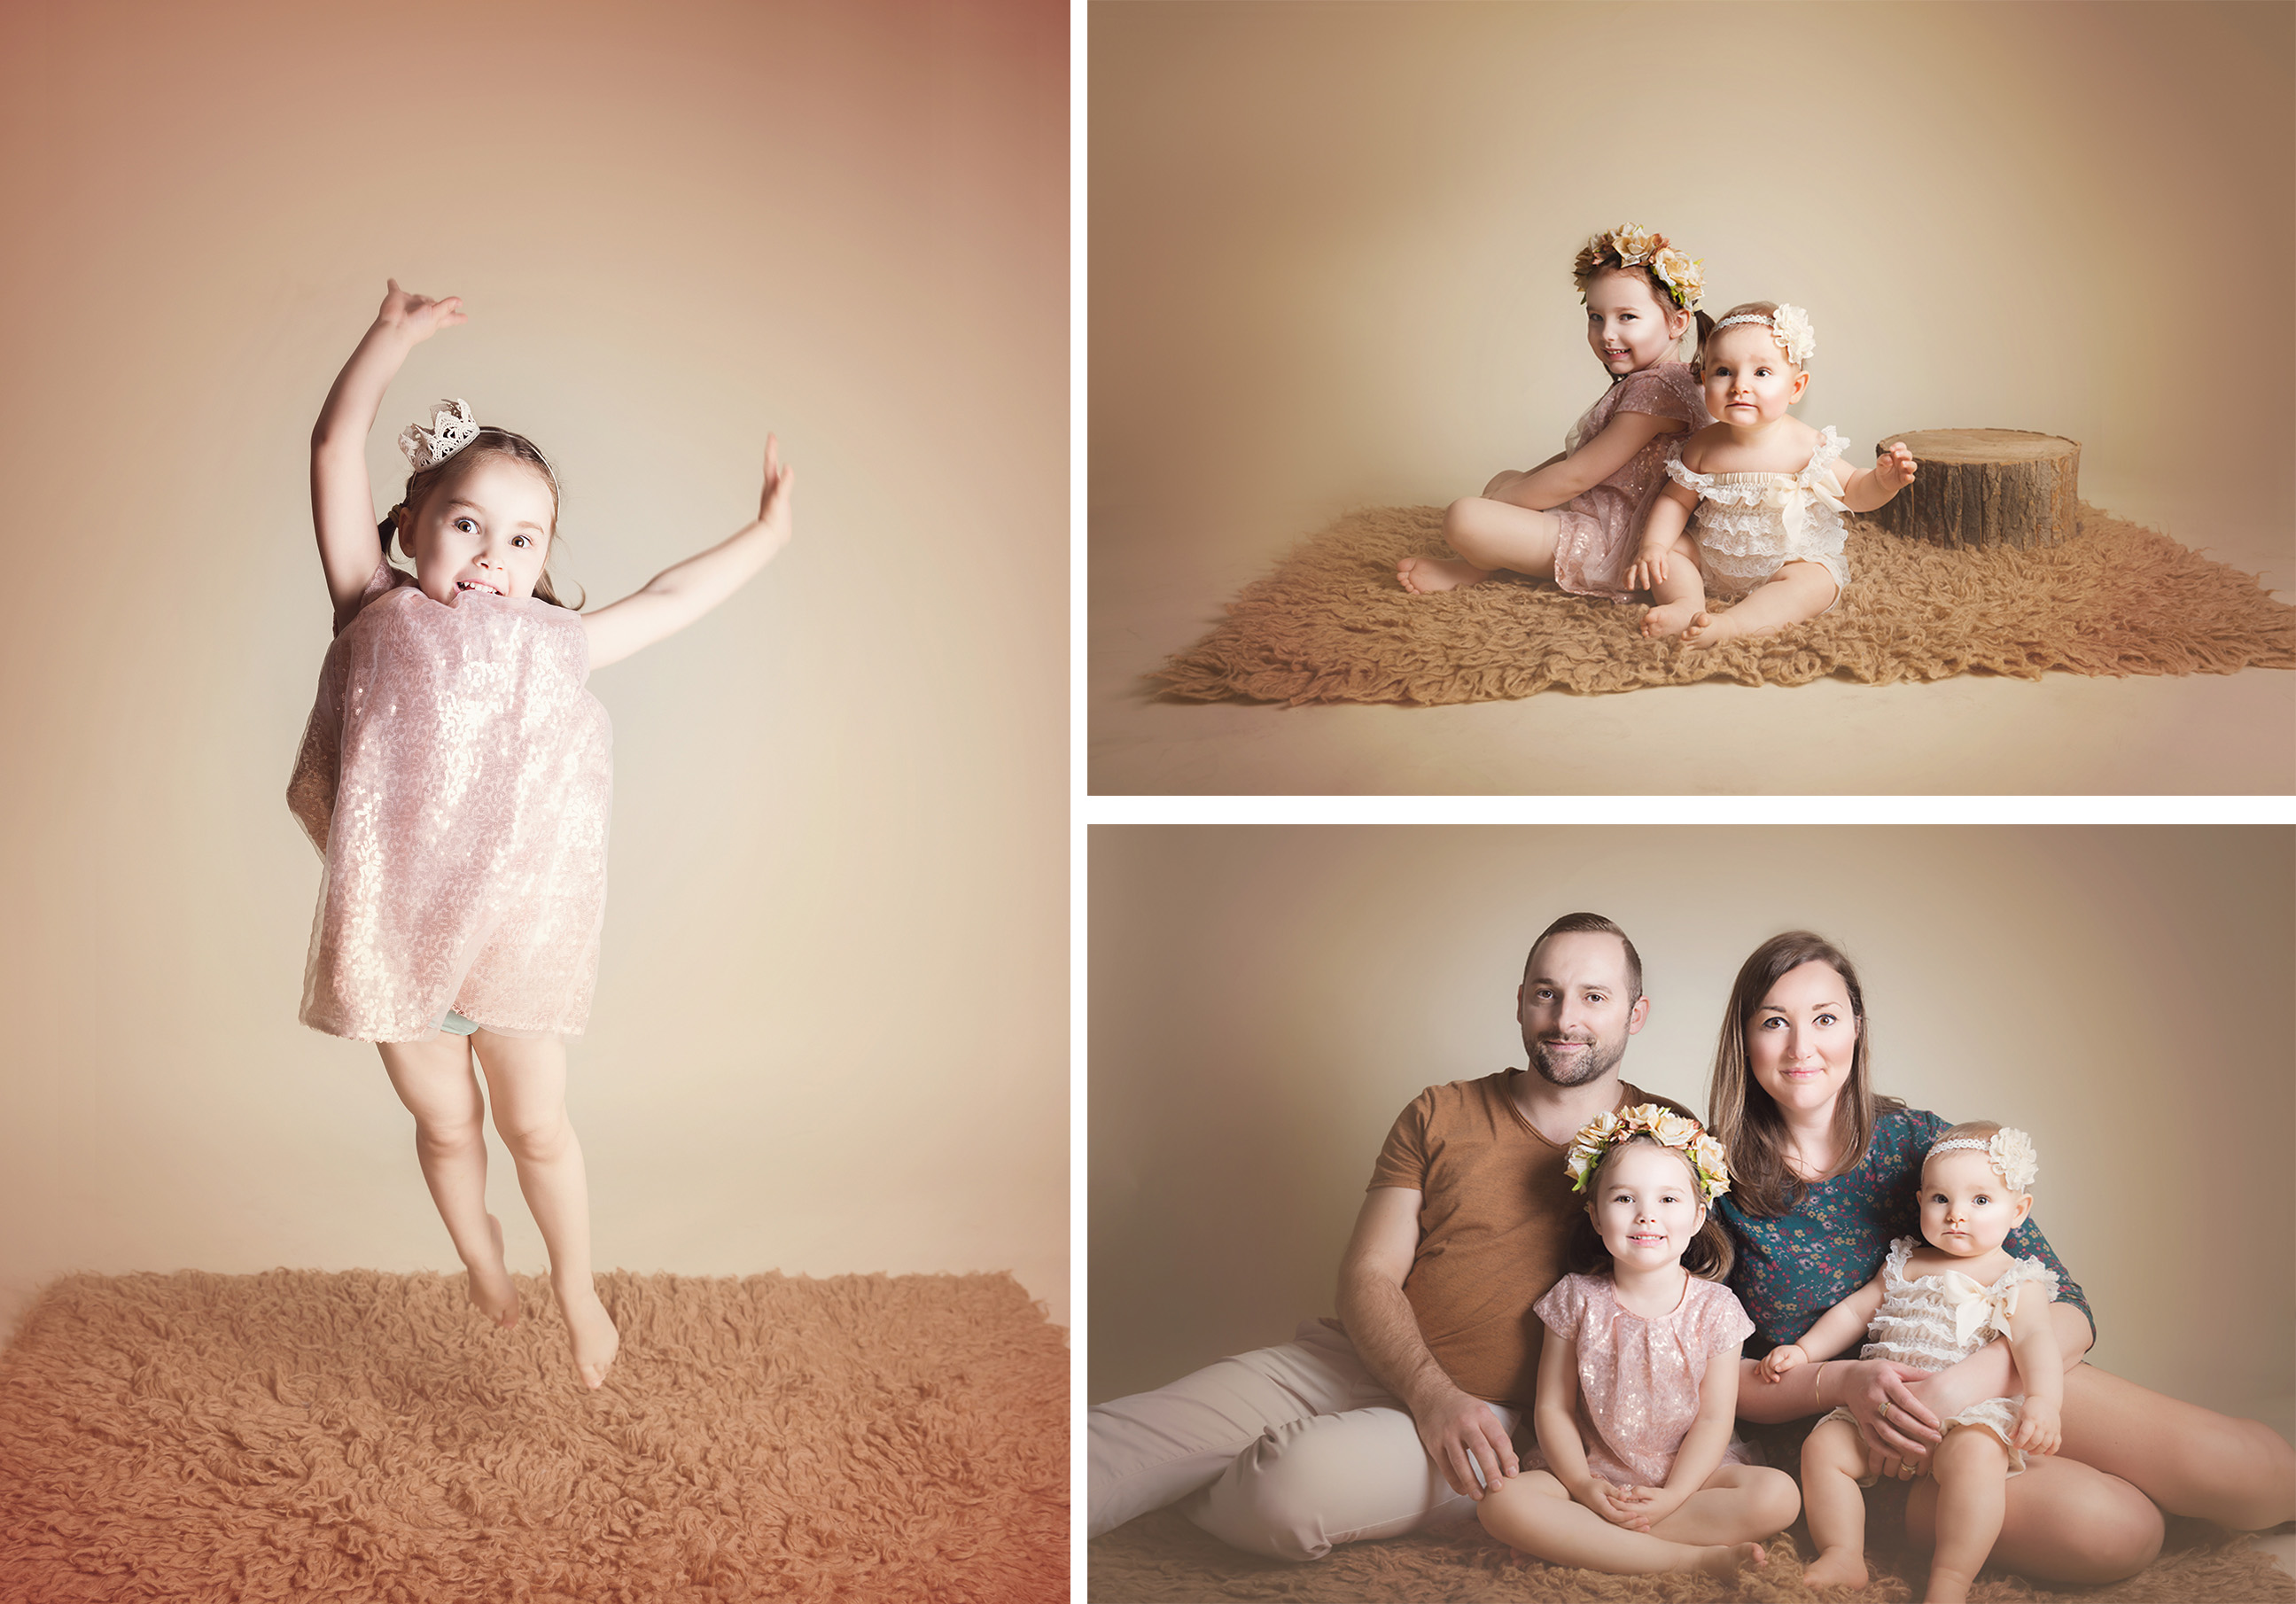 seance photo en famille sur lille studio photo - one moment photographie -1